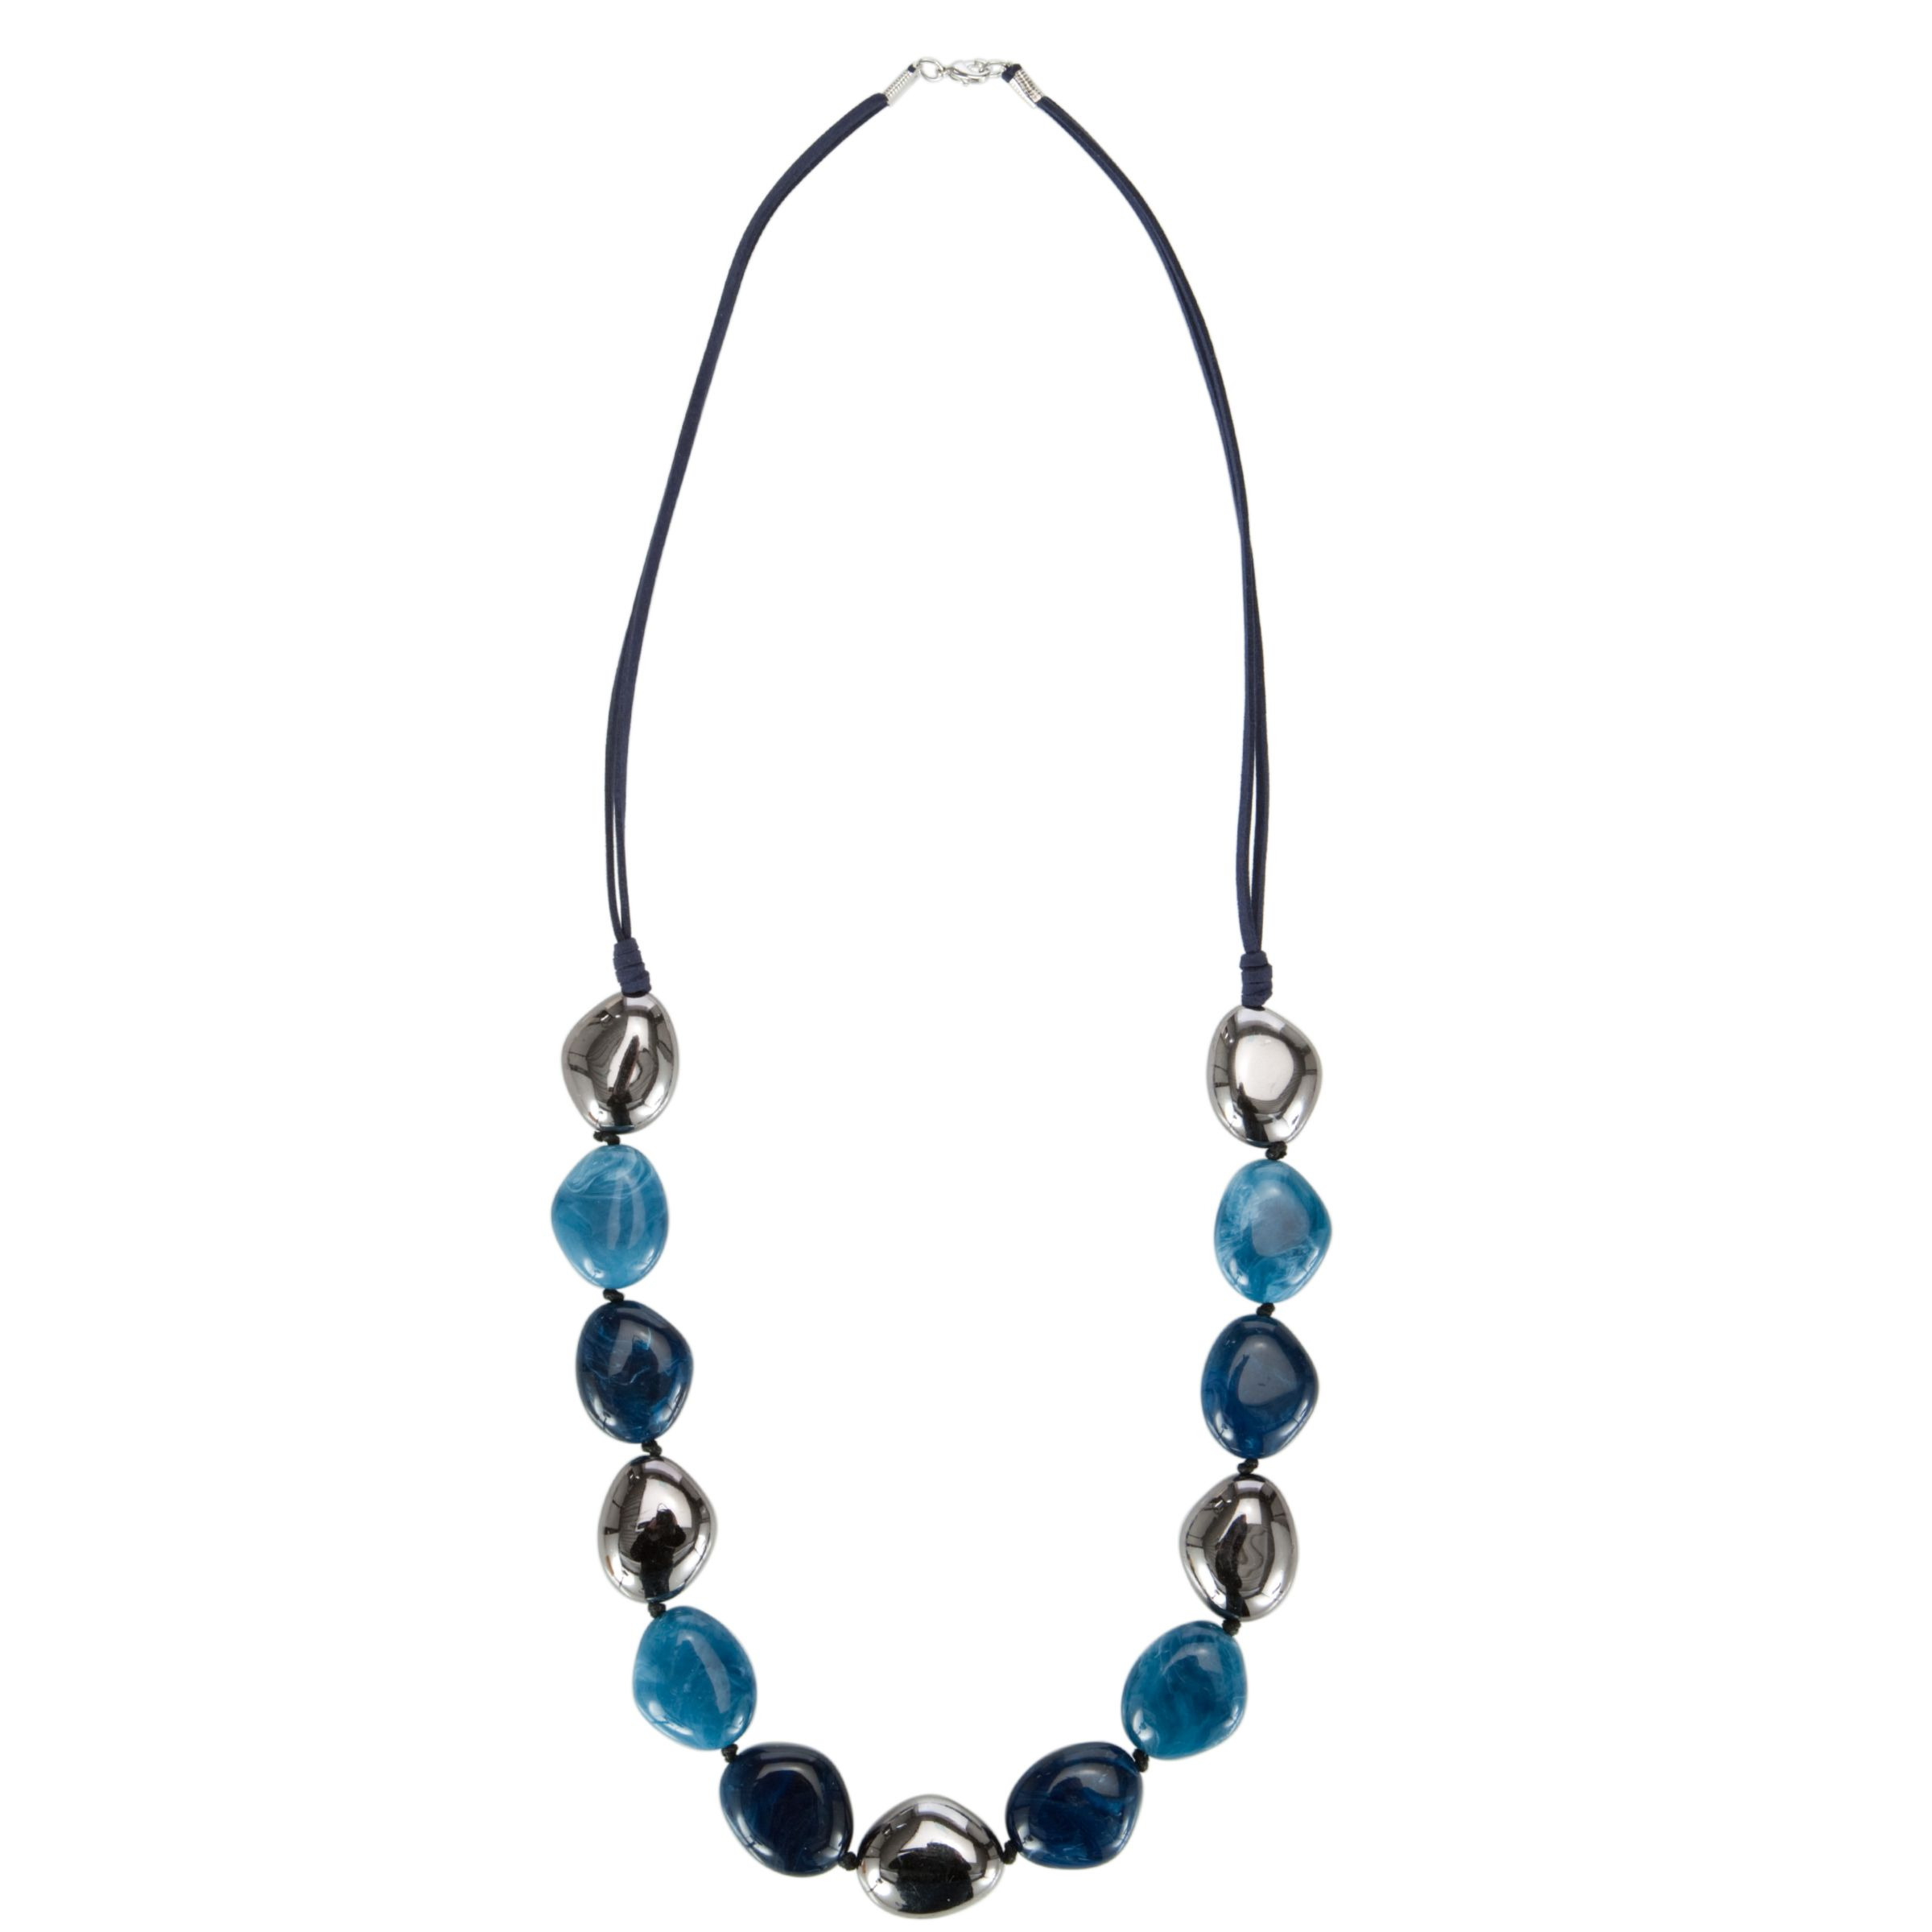 John Lewis Women Blue Bead and Suede Long Necklace, Blue